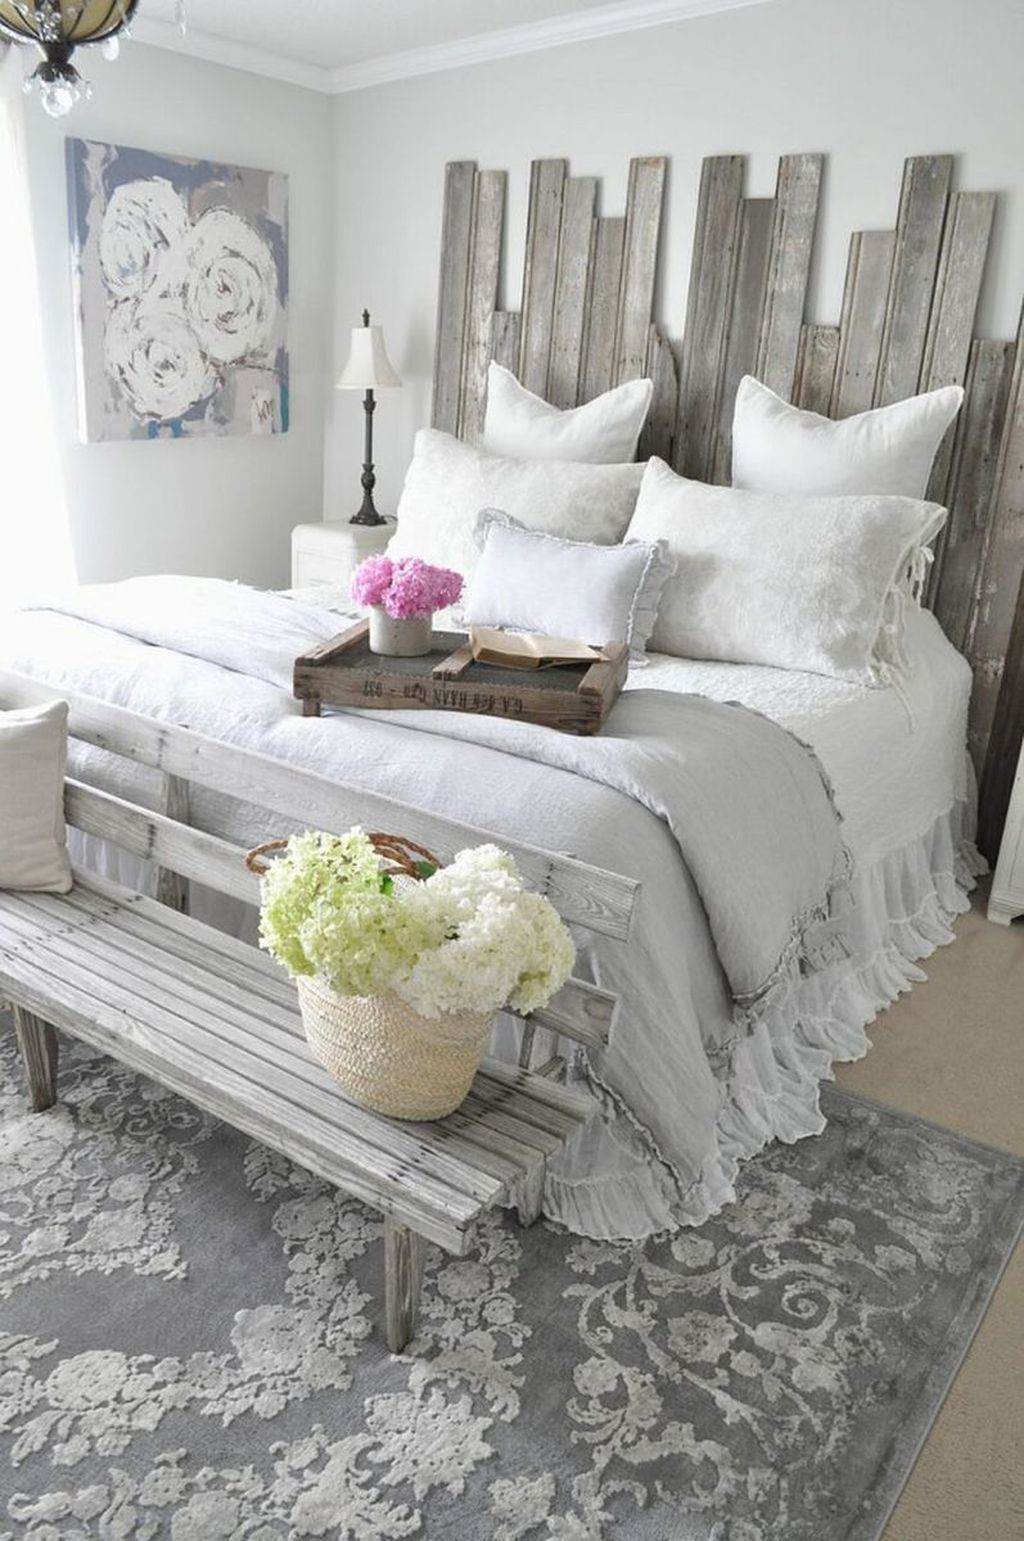 Master bedroom bedroom decor ideas  Awesome  Cool Farmhouse Style Master Bedroom Decoration Ideas